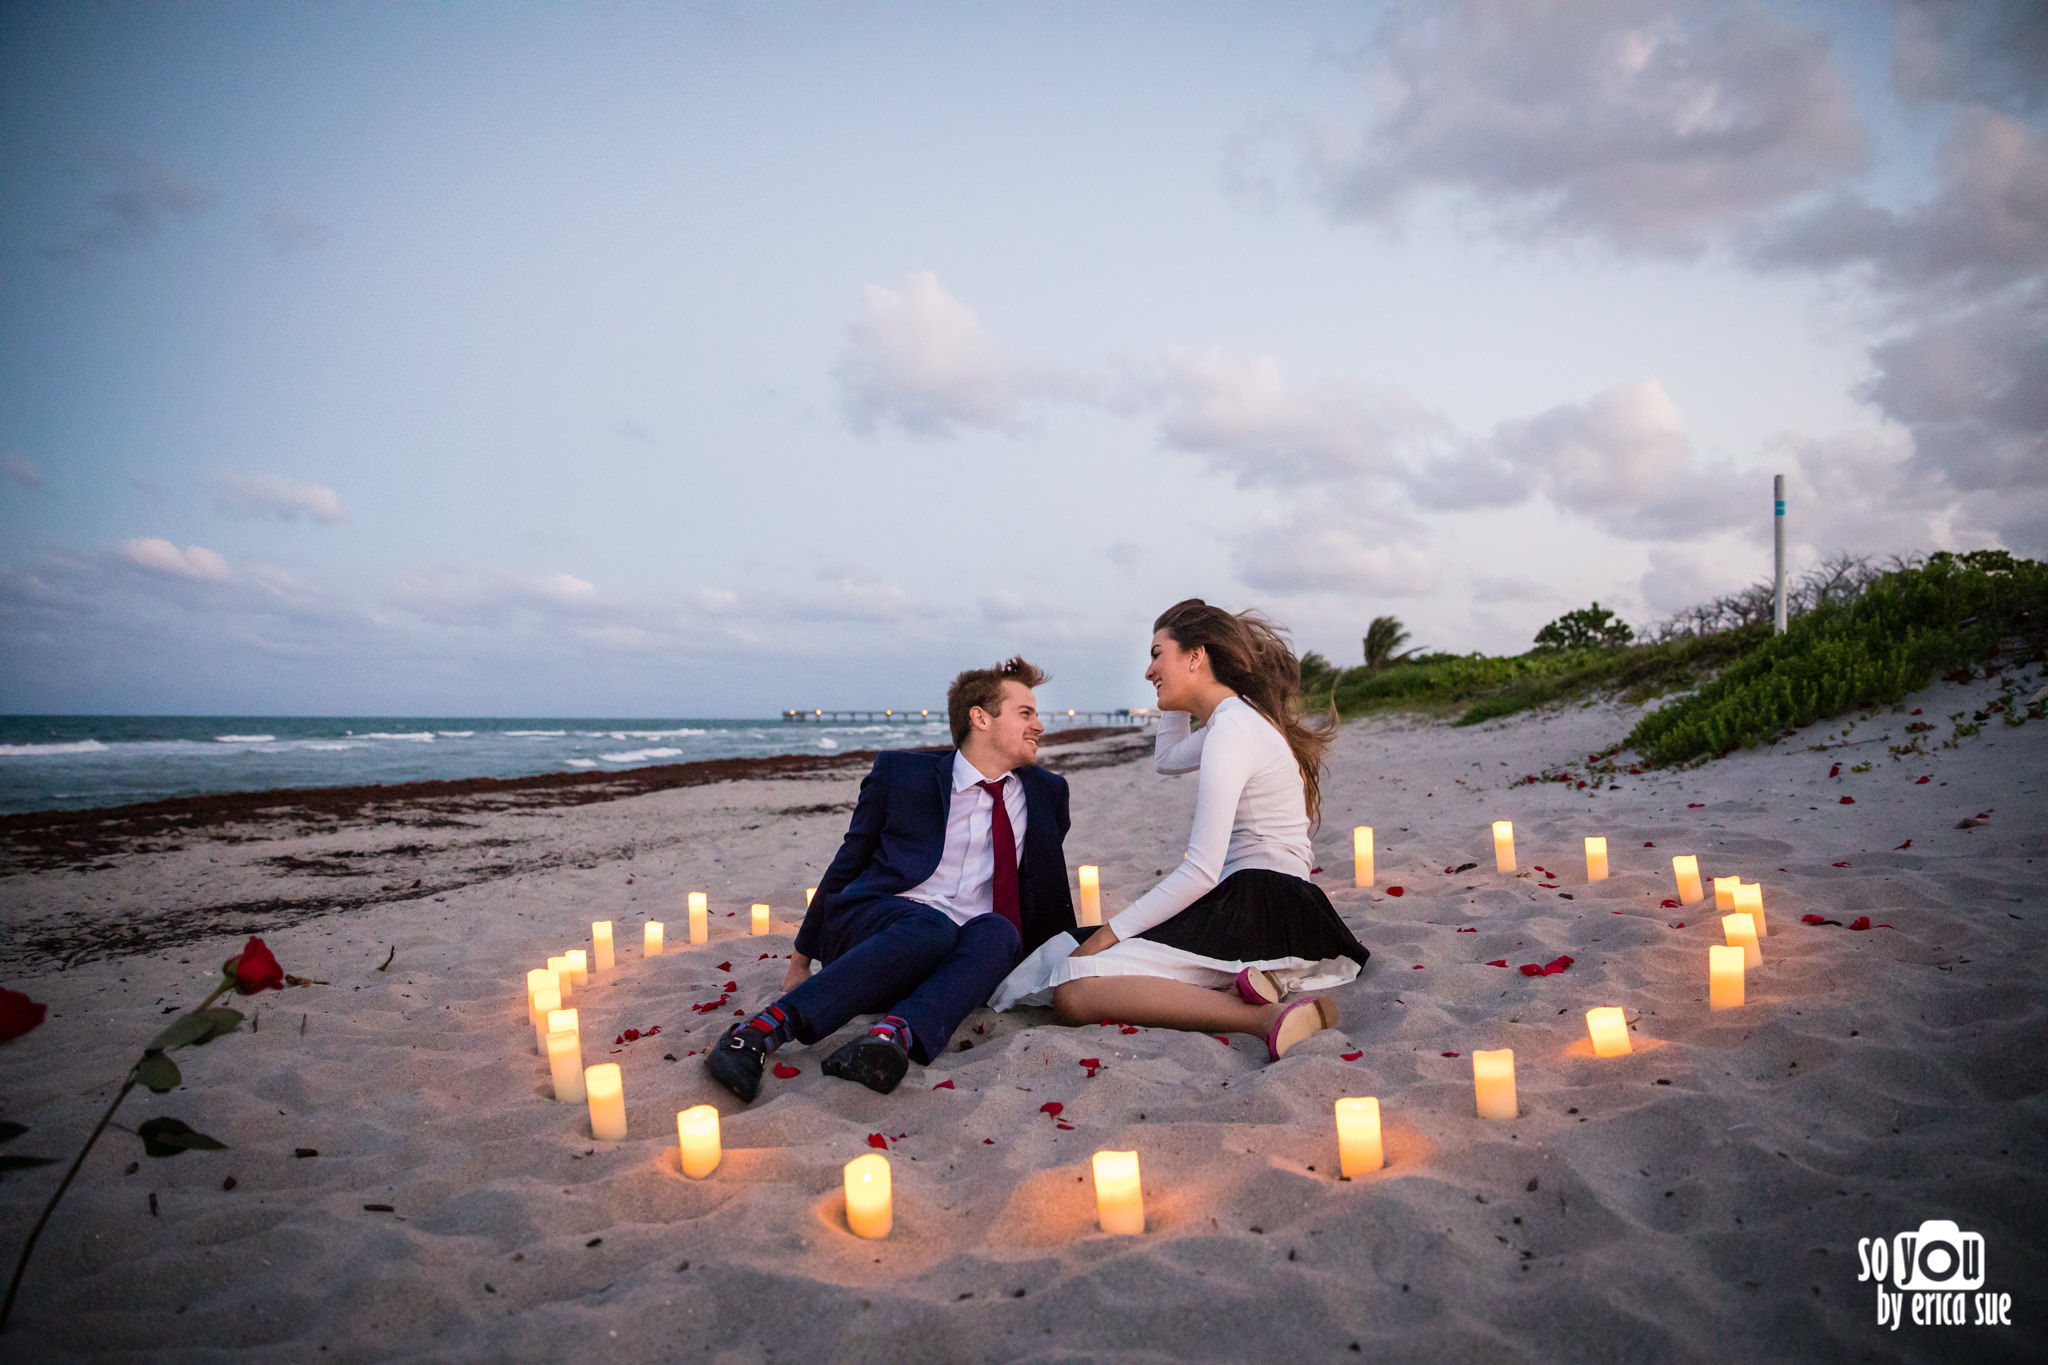 so-you-by-erica-sue-hollywood-fl-photographer-beach-engagement-flowers-candles-5281.jpg